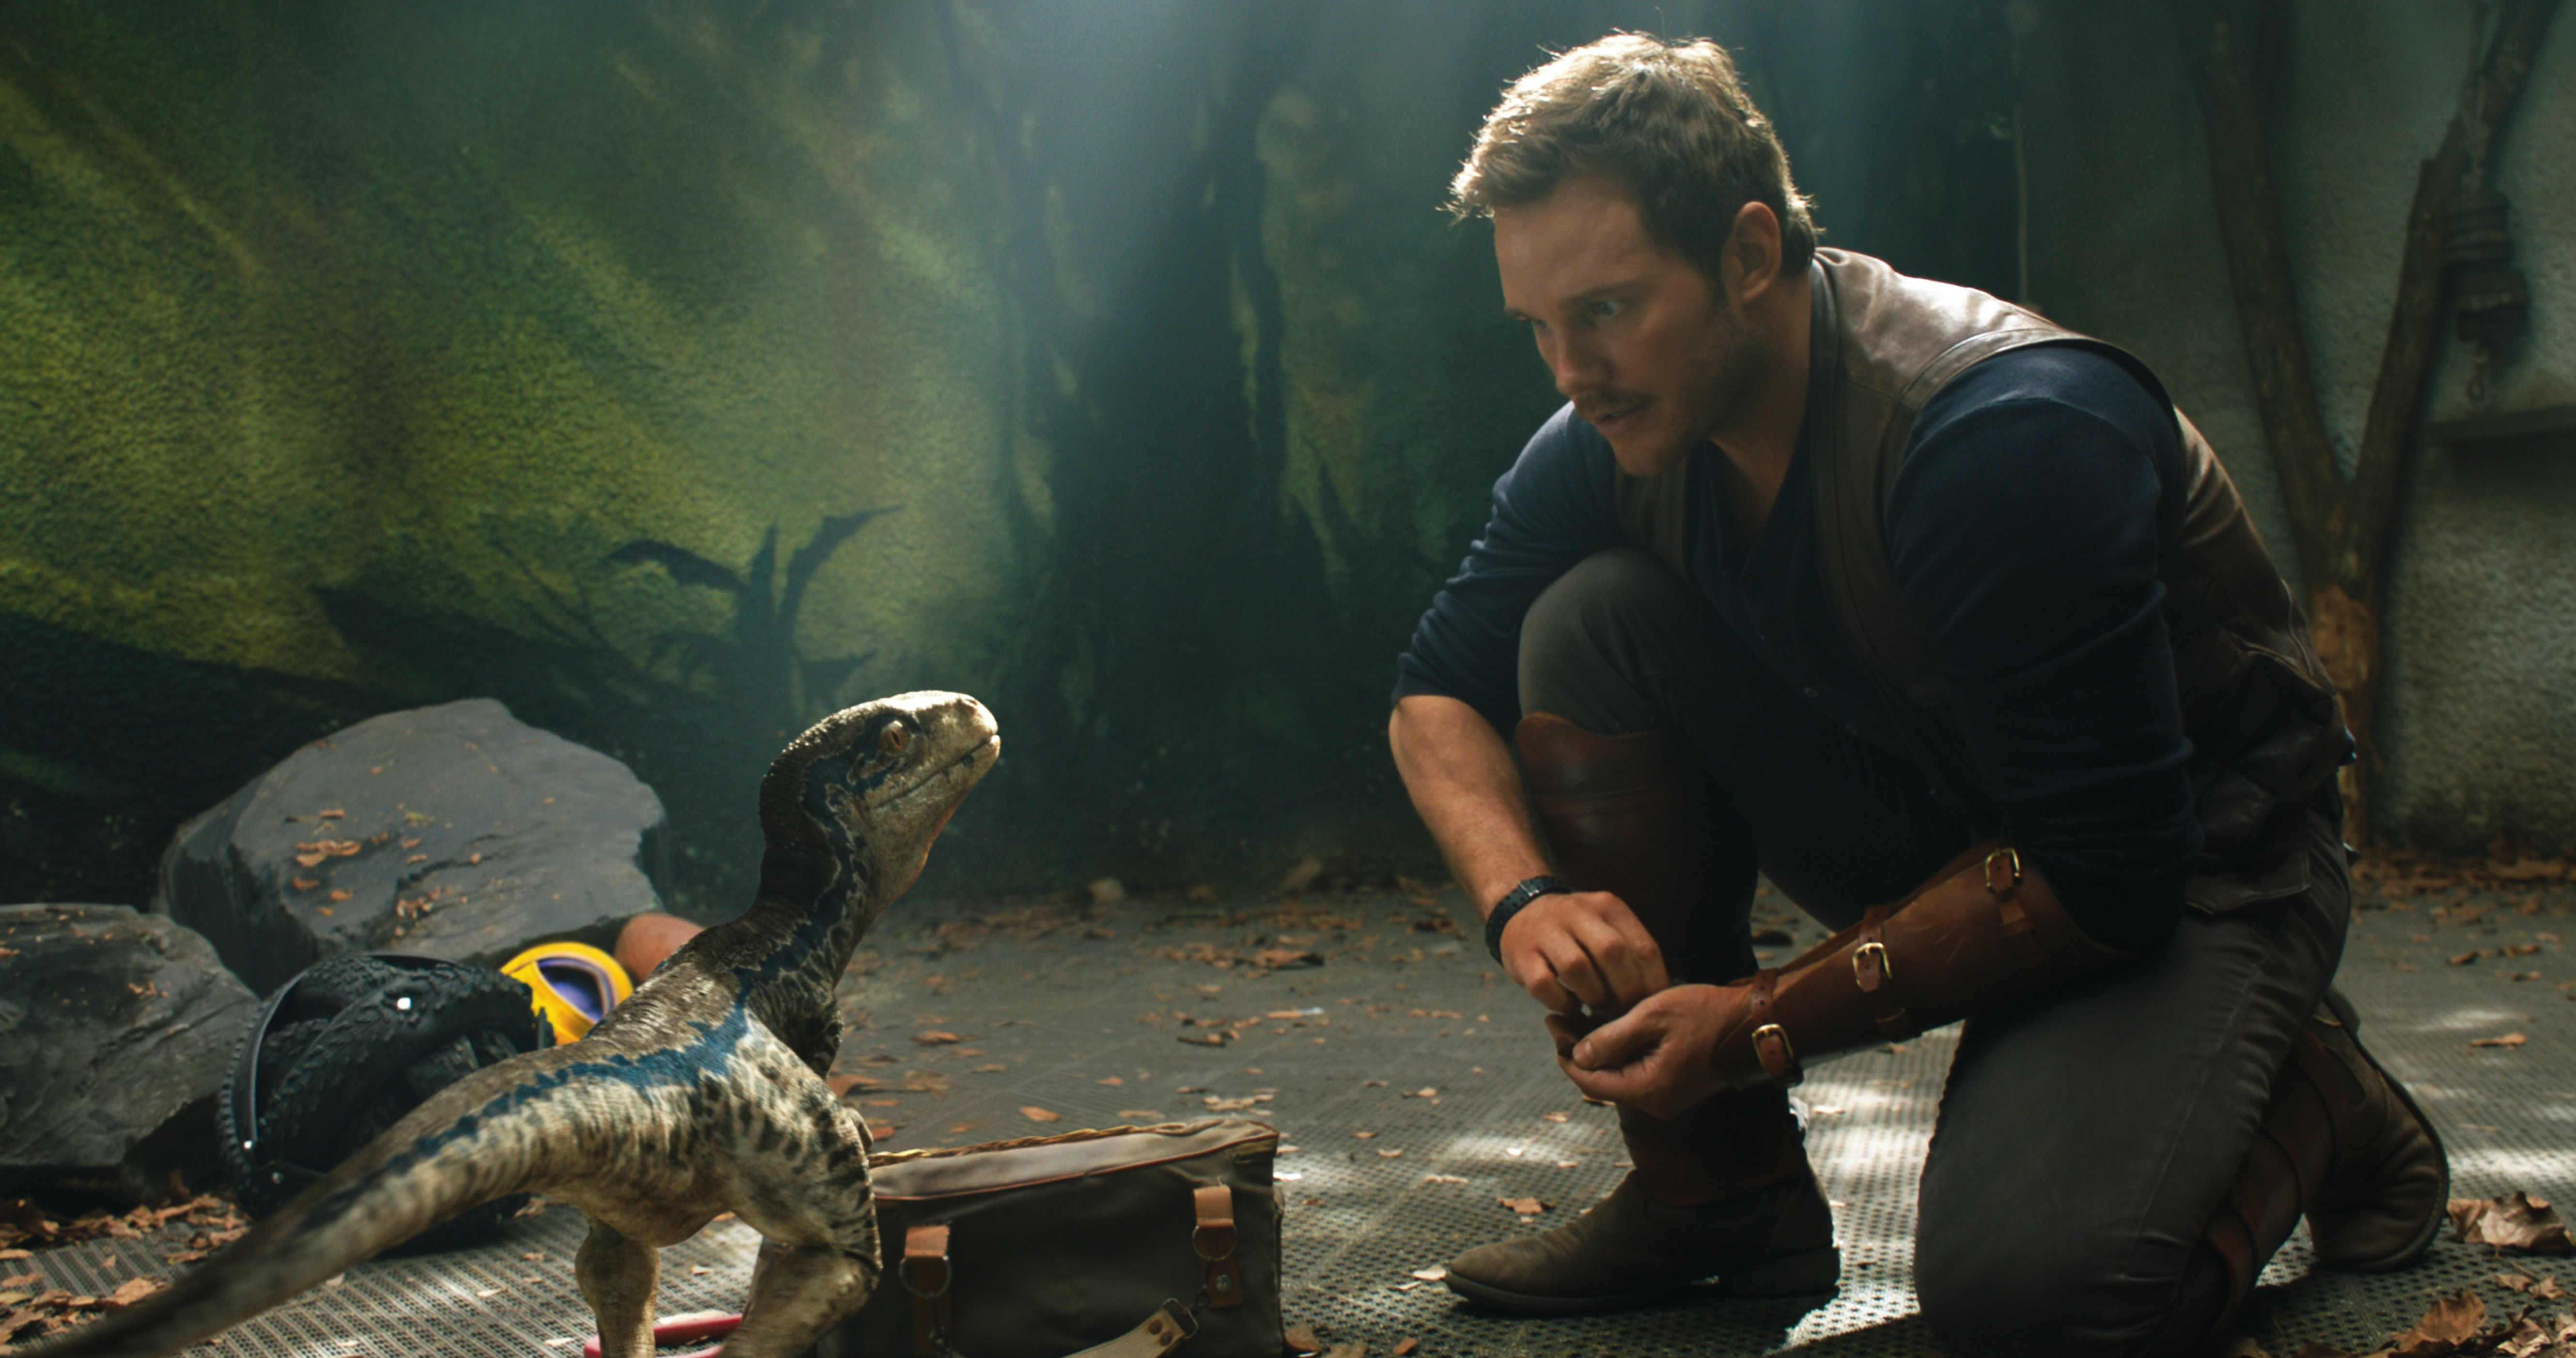 From outsized dinosaurs to outrunning hot lava in Jurassic World: Fallen Kingdom